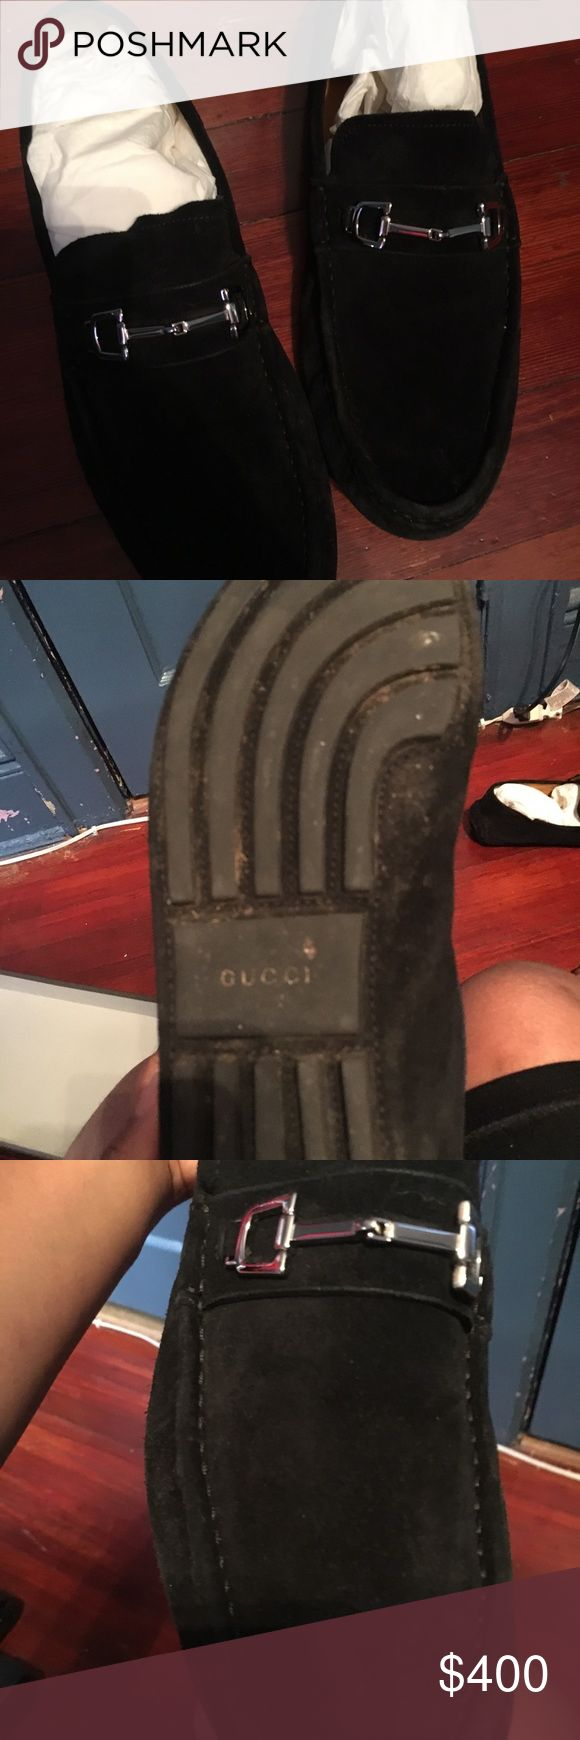 A pair of Gucci shoes It is black suede loafers great condition great dress shoes to go out in if u really want it contact me for any verifications at 347-613-1280 Gucci Shoes Loafers & Slip-Ons